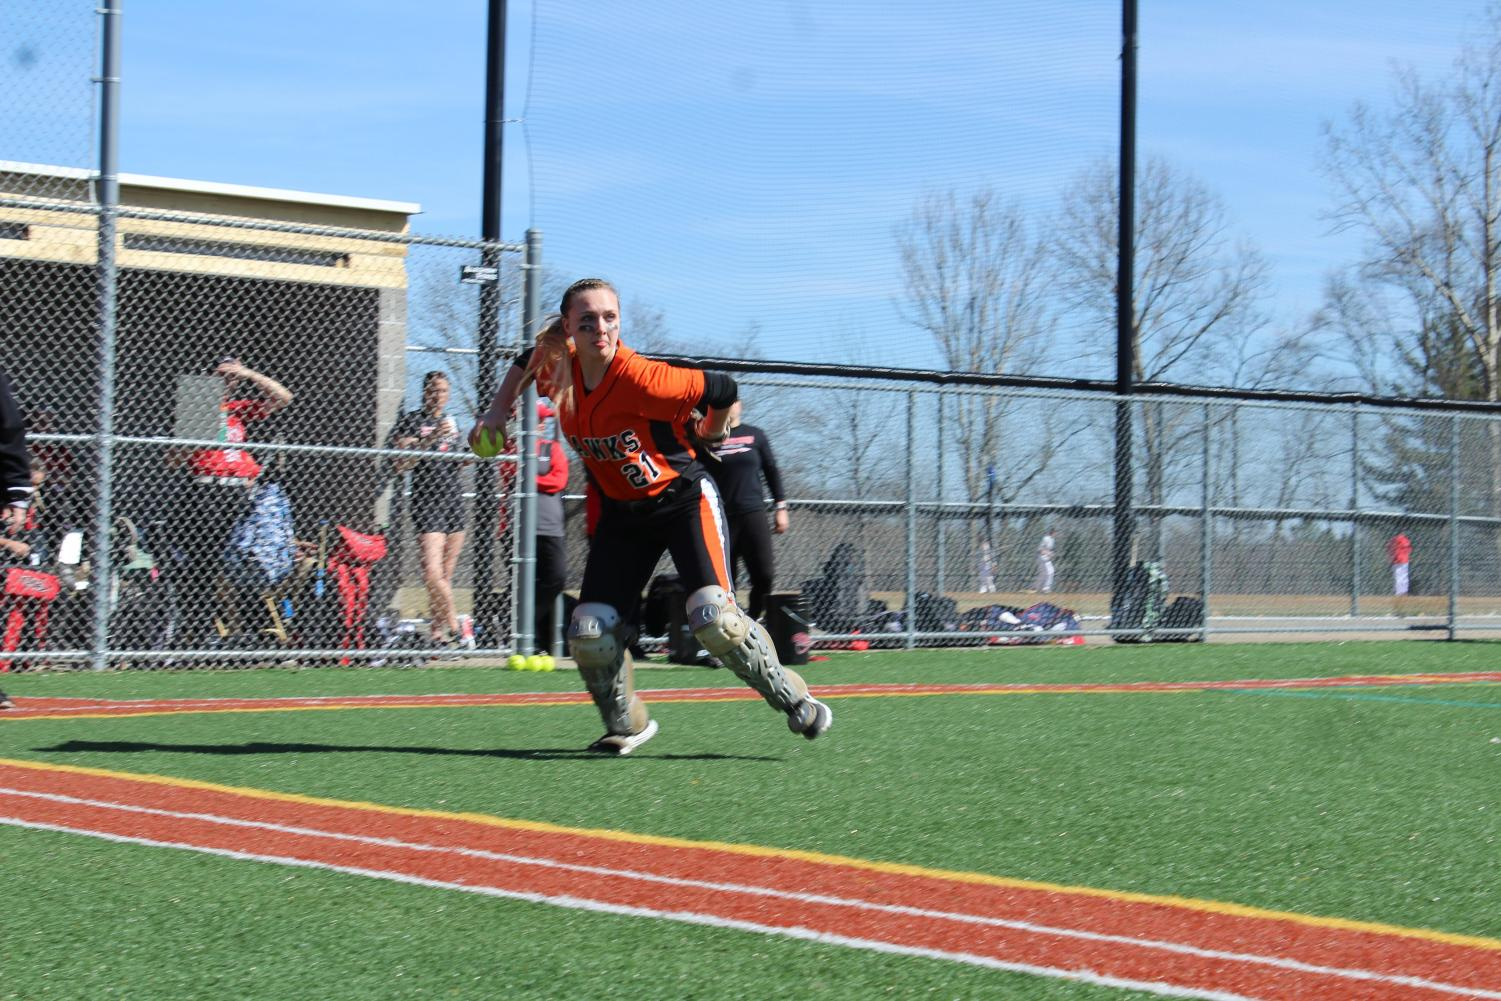 Catcher Shayna Postler aims to throw to first during the Lady Hawks' game vs. Peters on Wednesday, March 27.